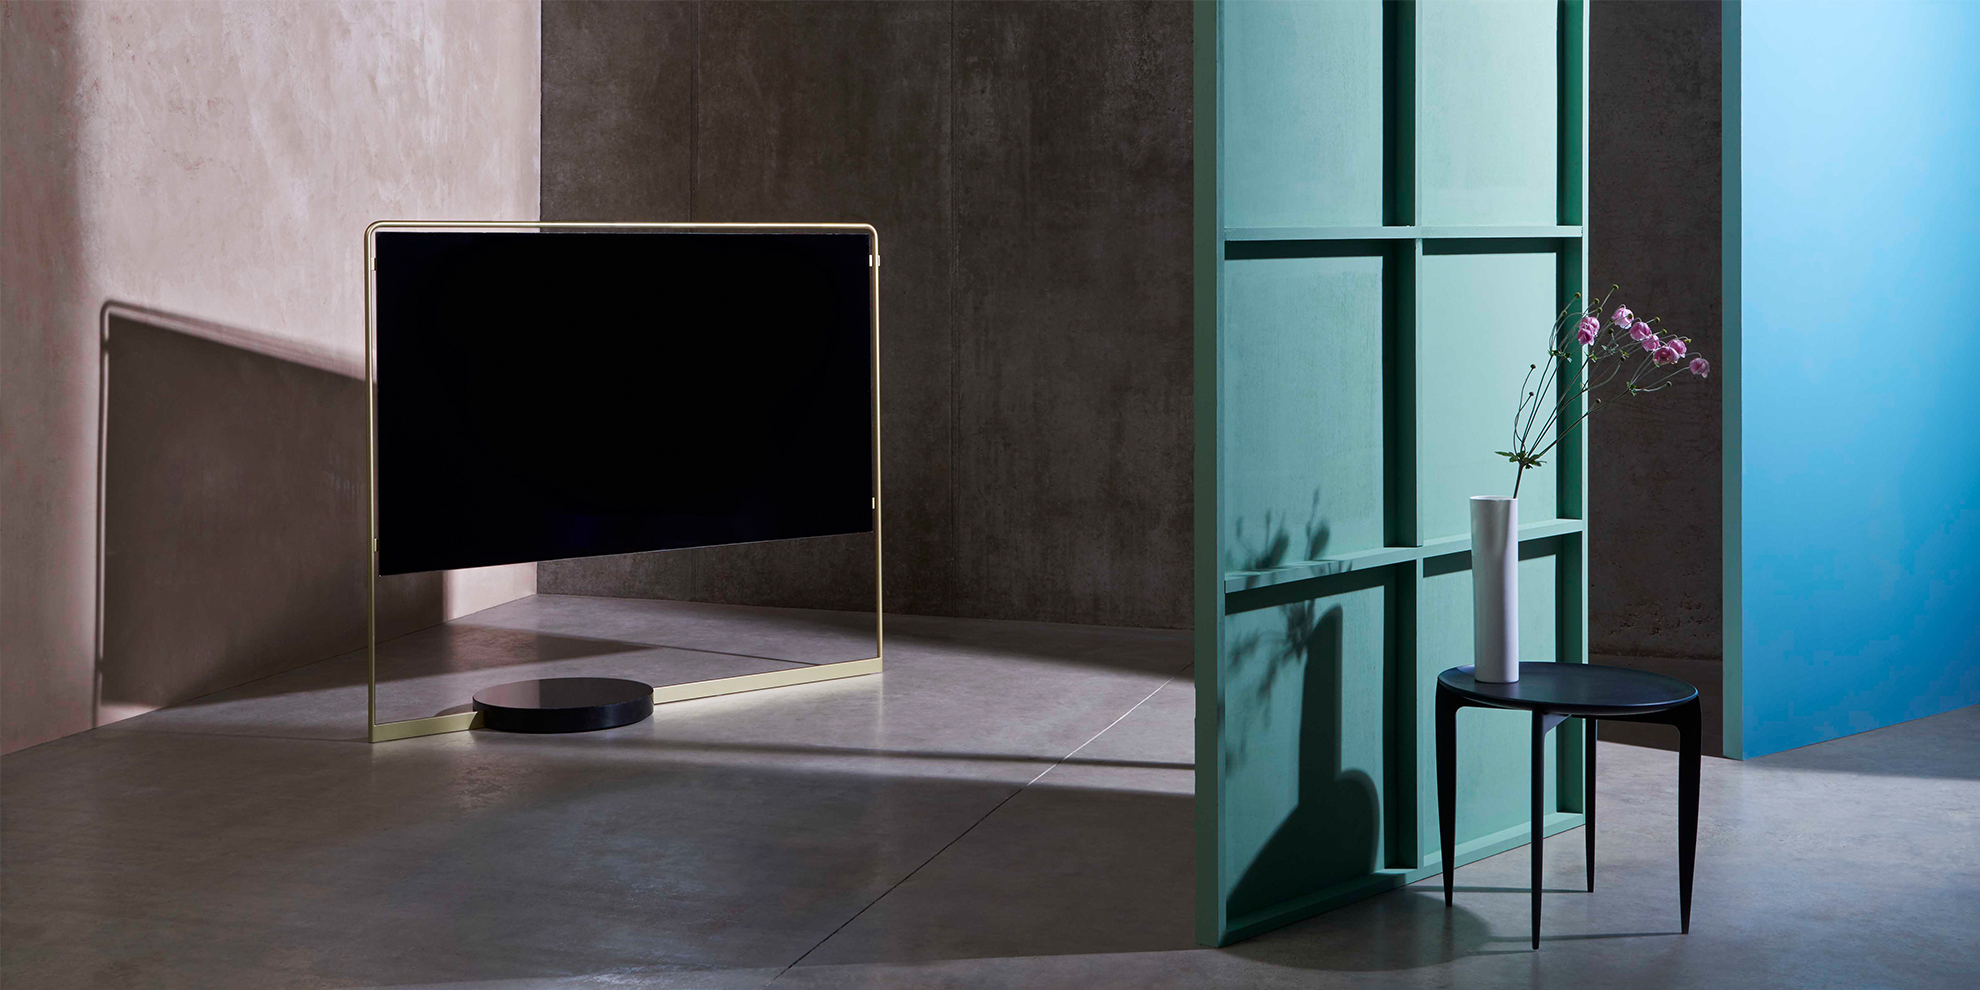 A photo of the Bild X TV by Loewe, which looks like a piece of modern art